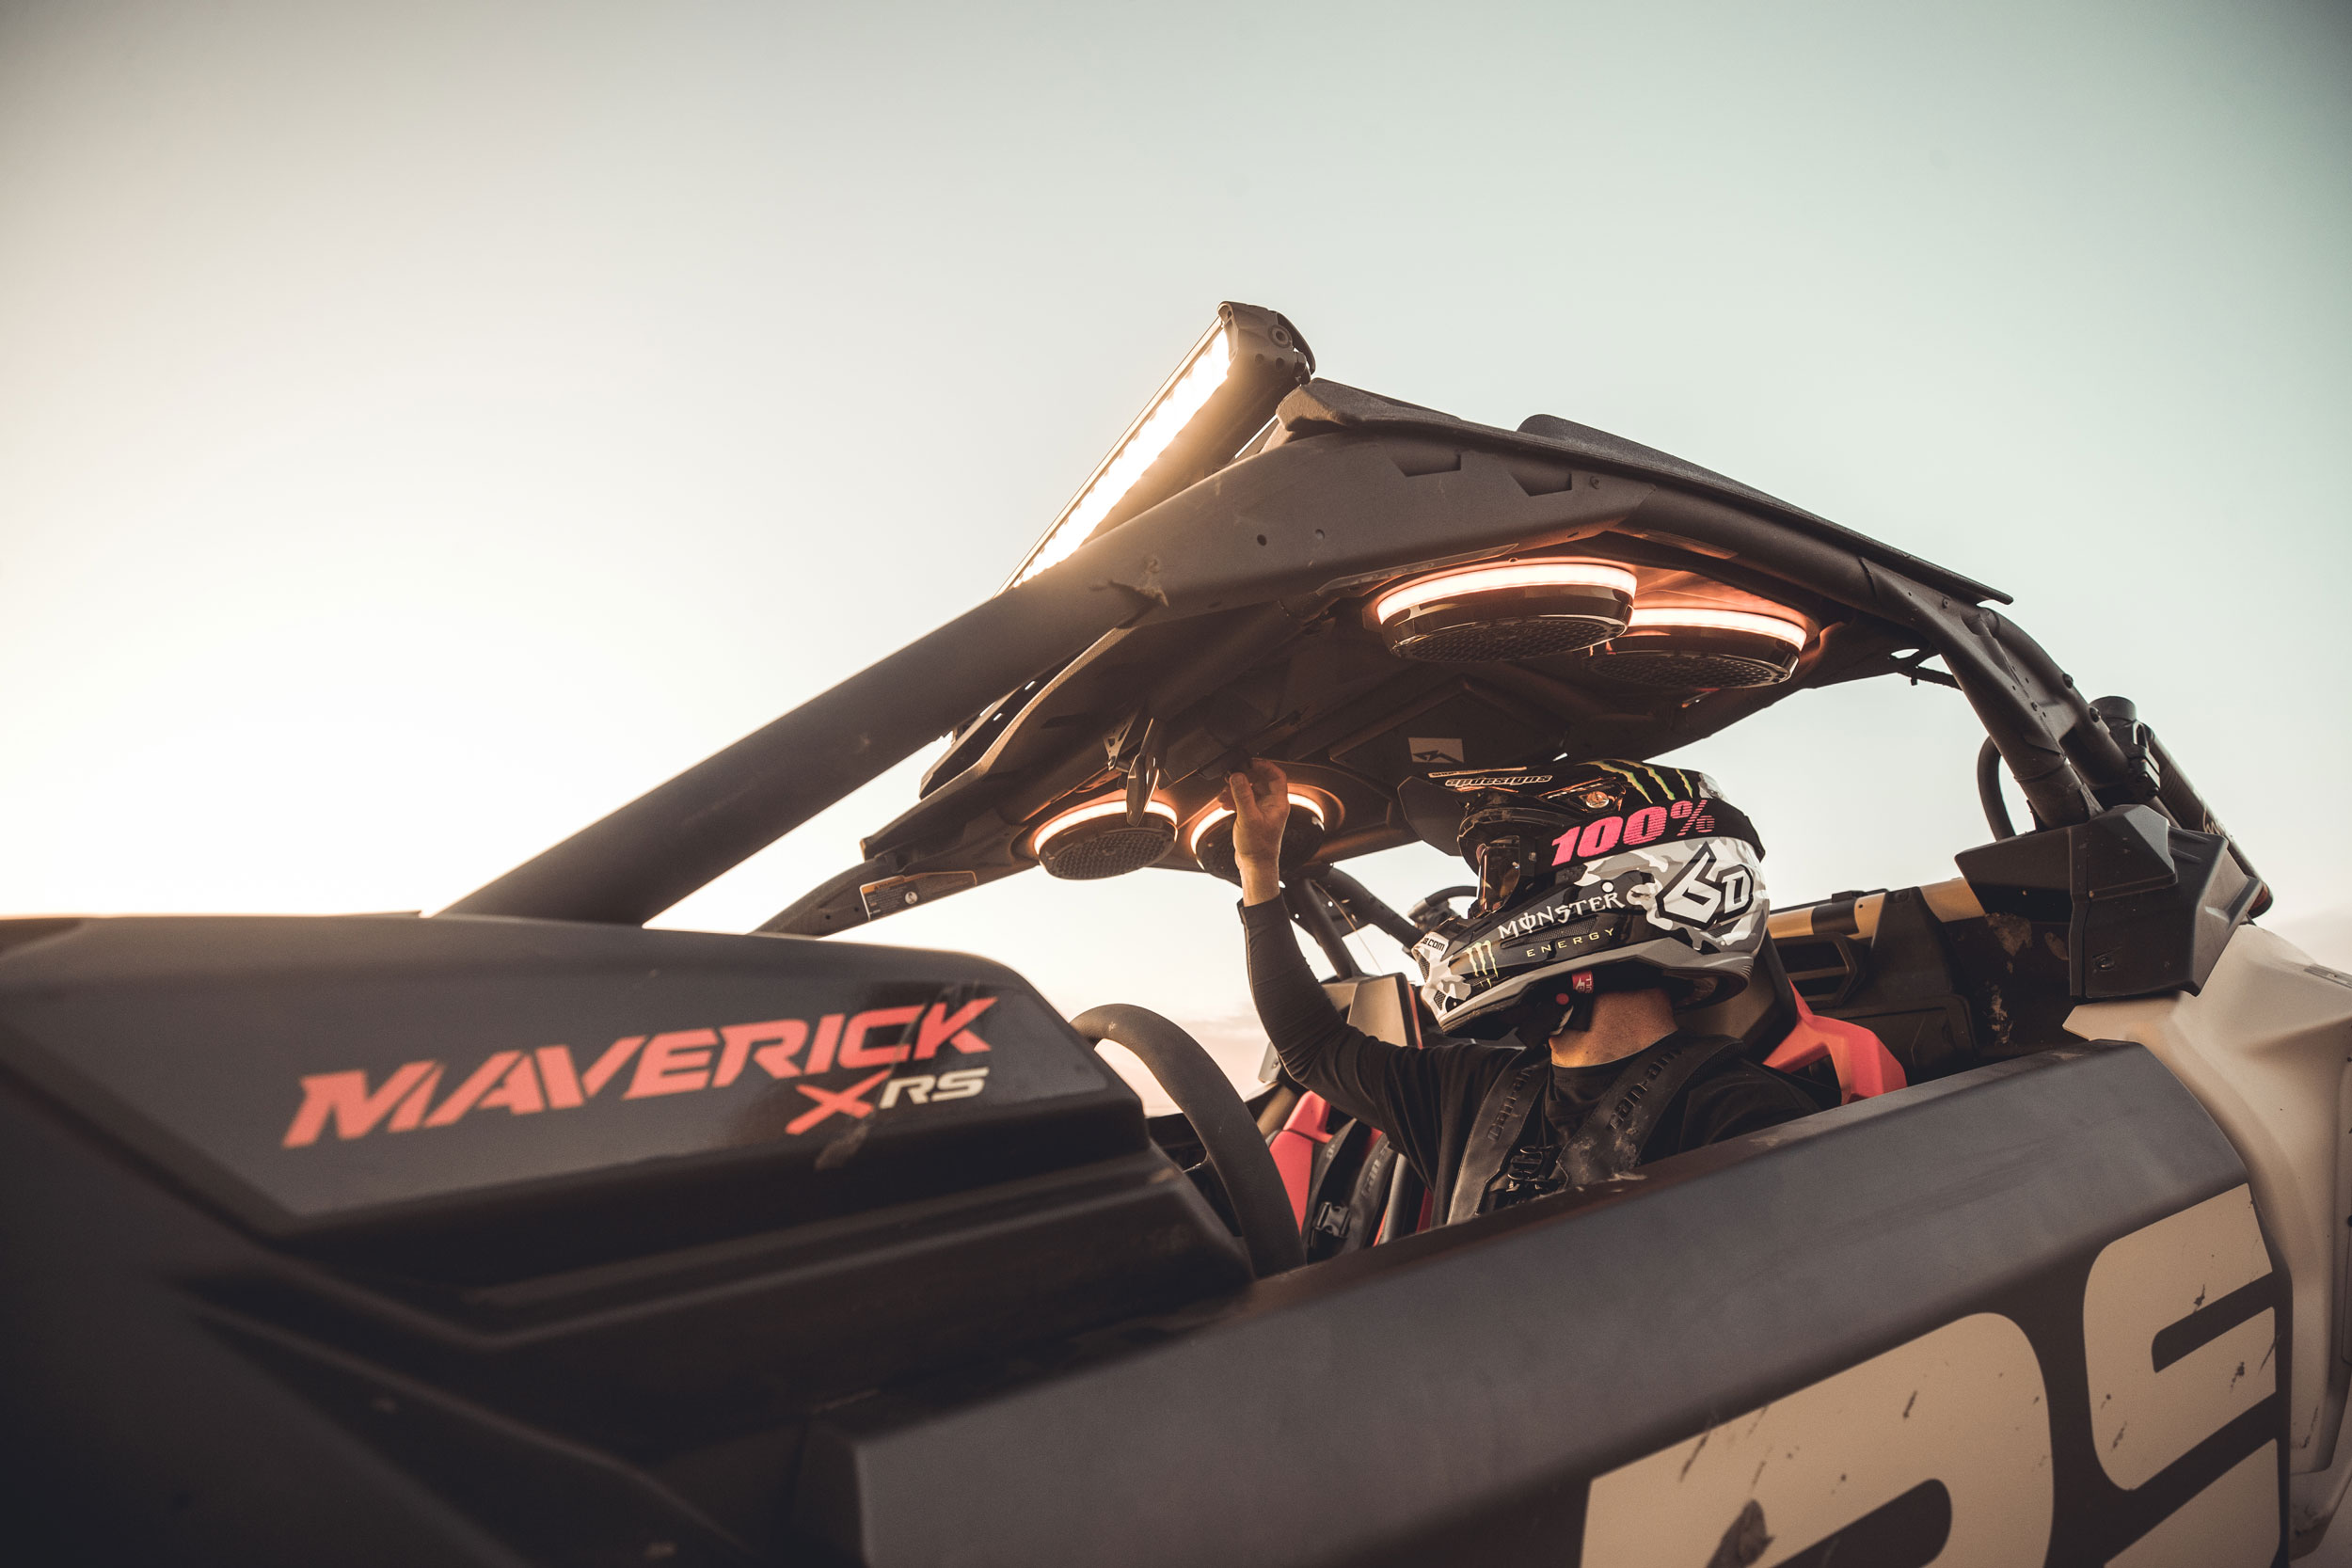 MY21 Can-Am Maverick X3 X rs Turbo RR 沙漠黄/碳黑/加美红 - 悬架